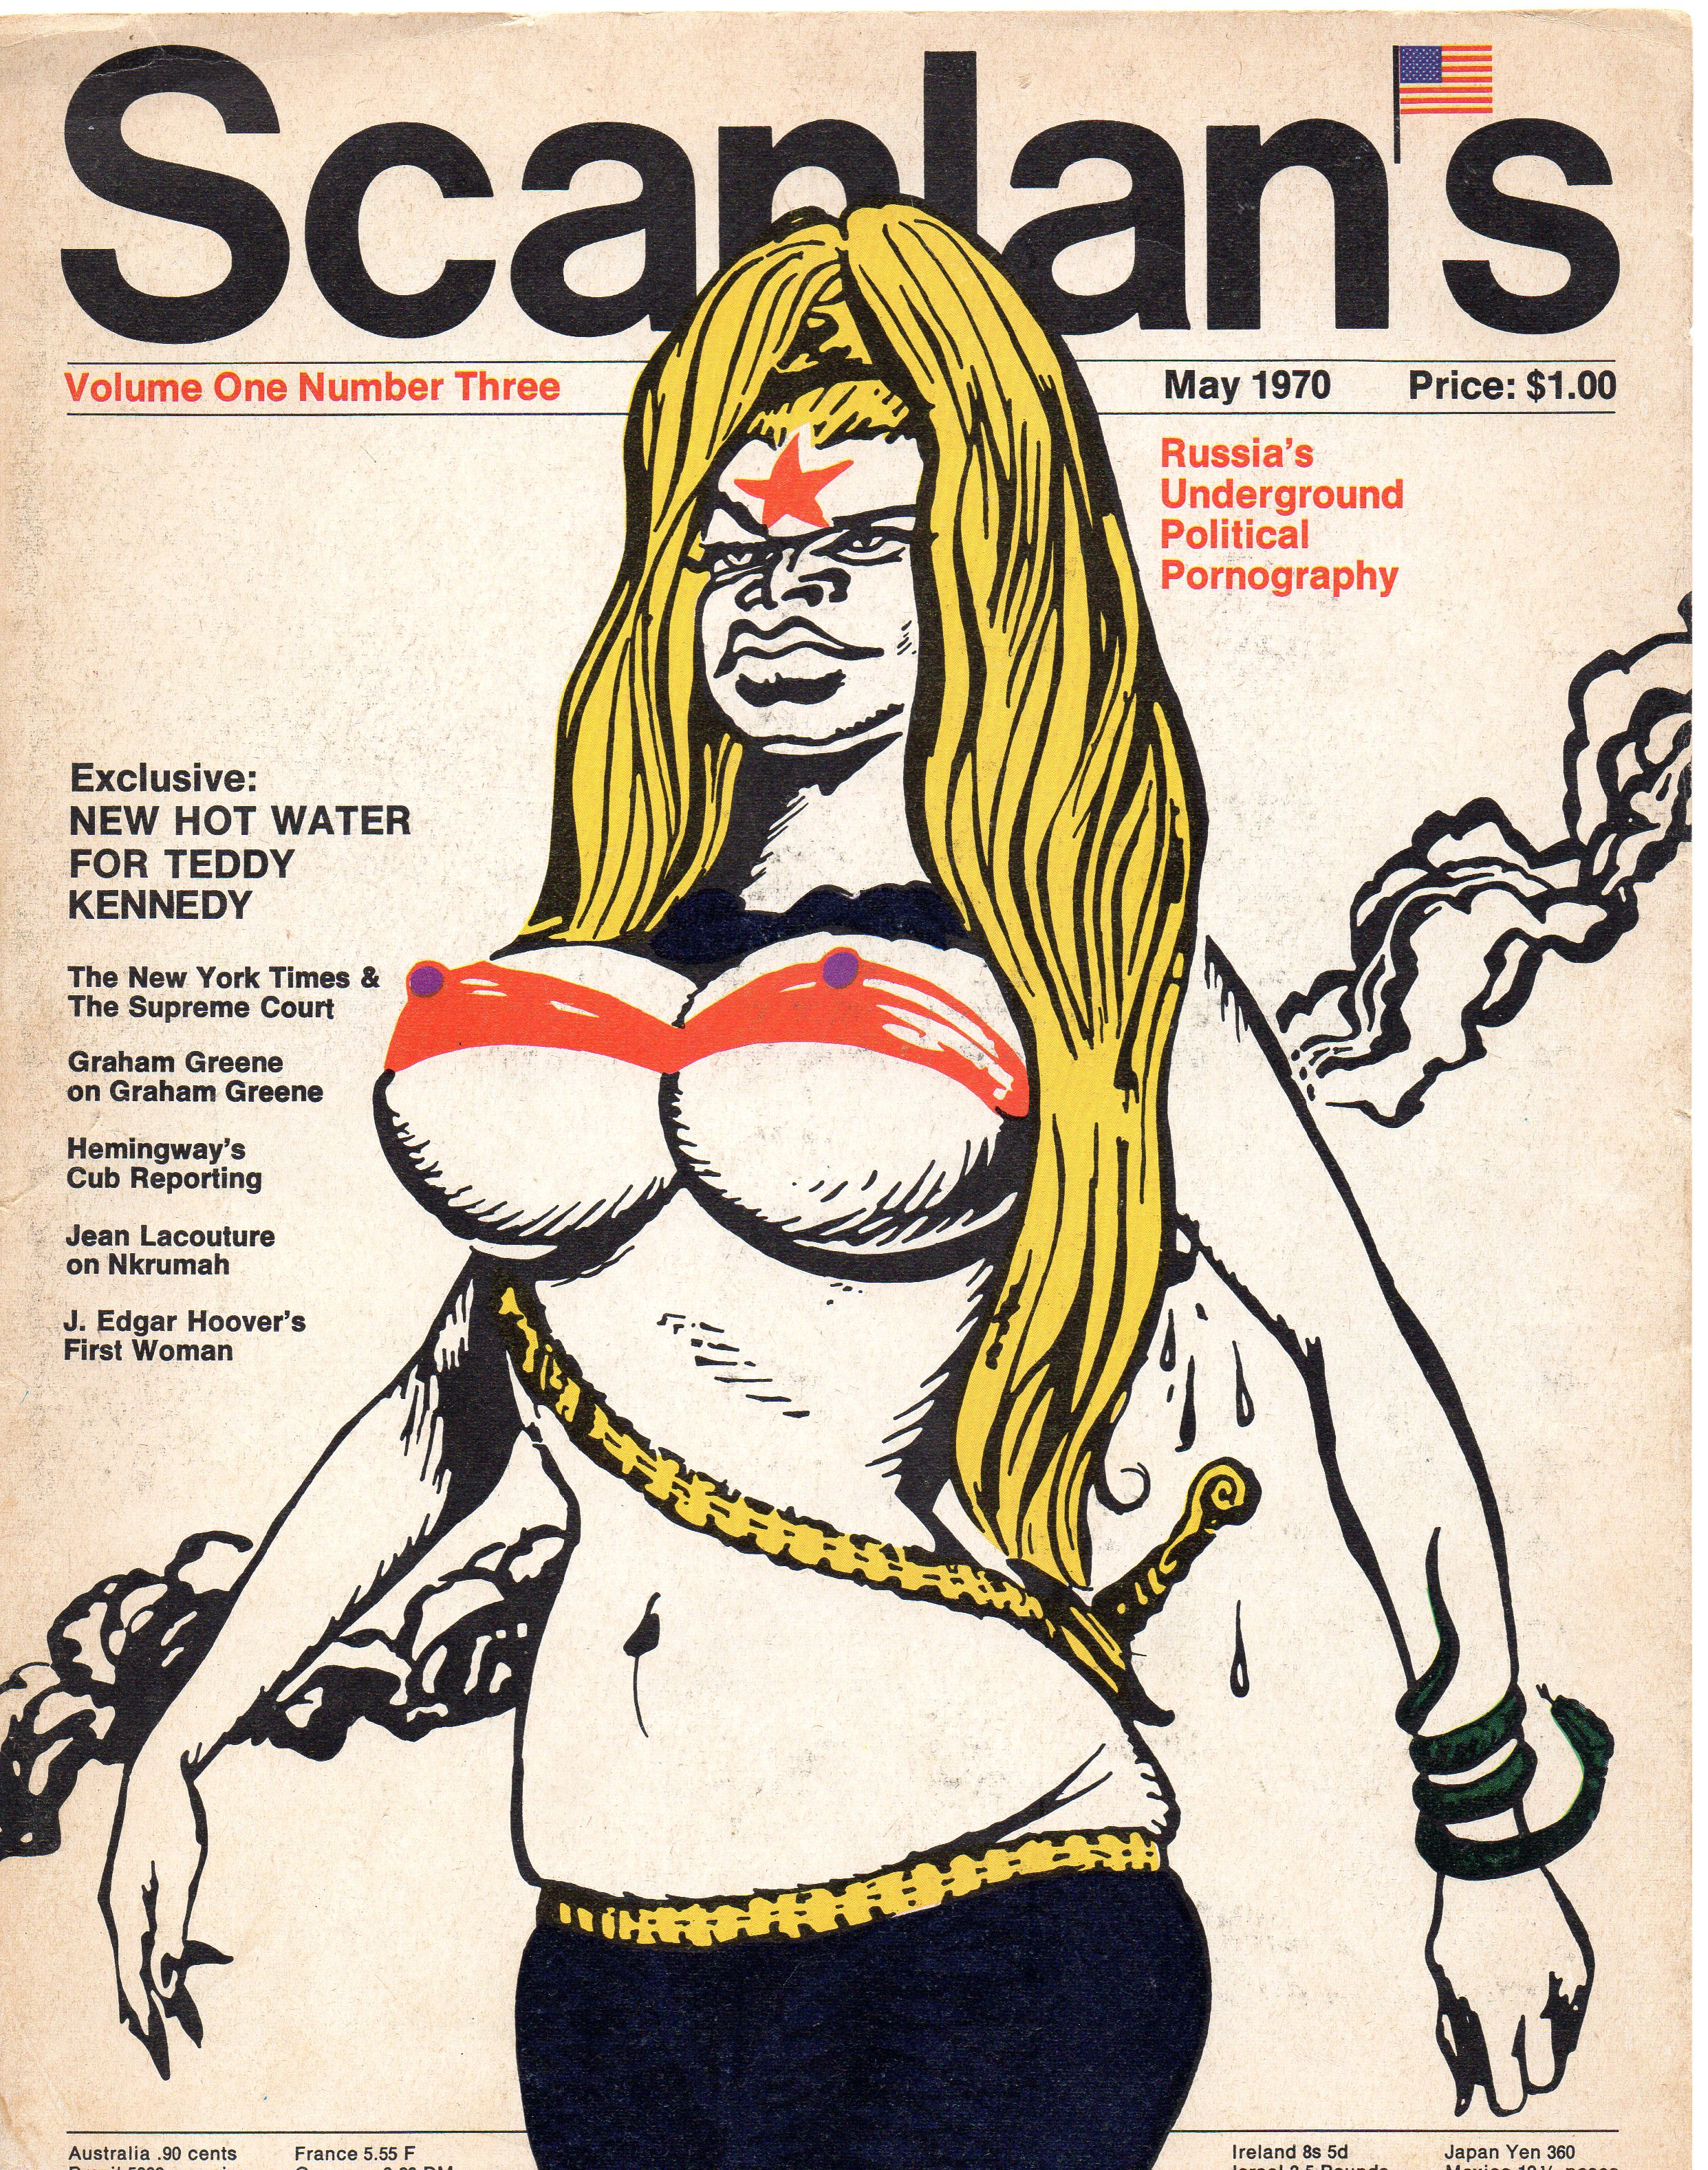 Scanlan's Monthly 3, May 1970, from my personal collection